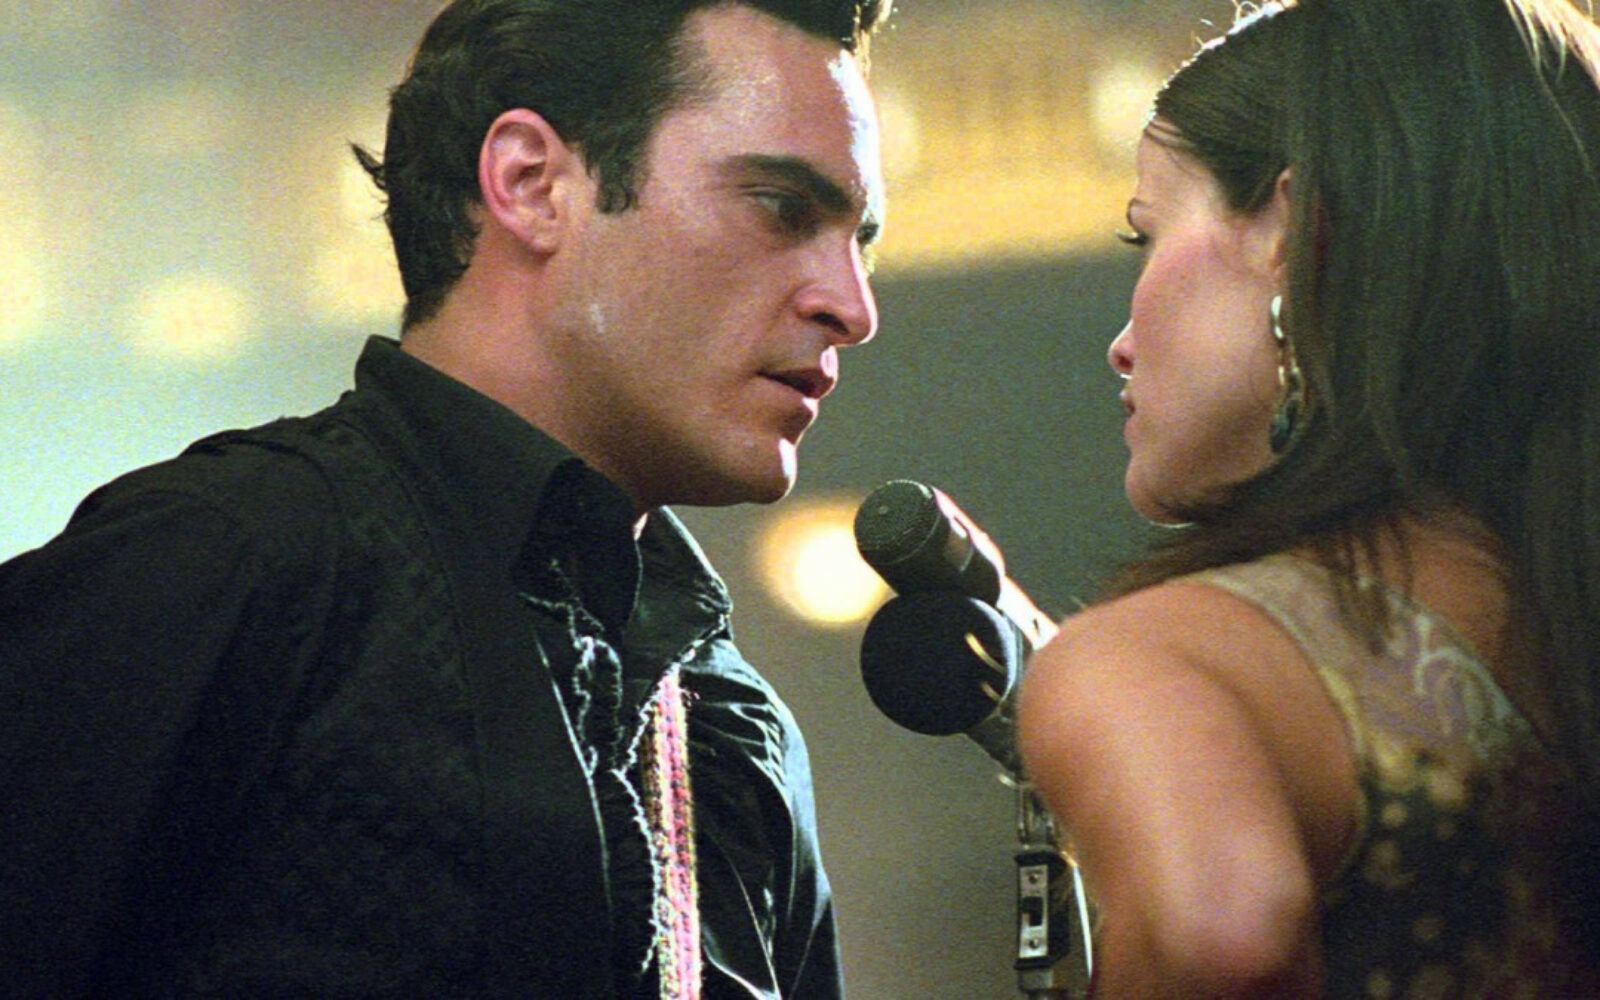 Walk the line – Quando l'amore brucia l'anima